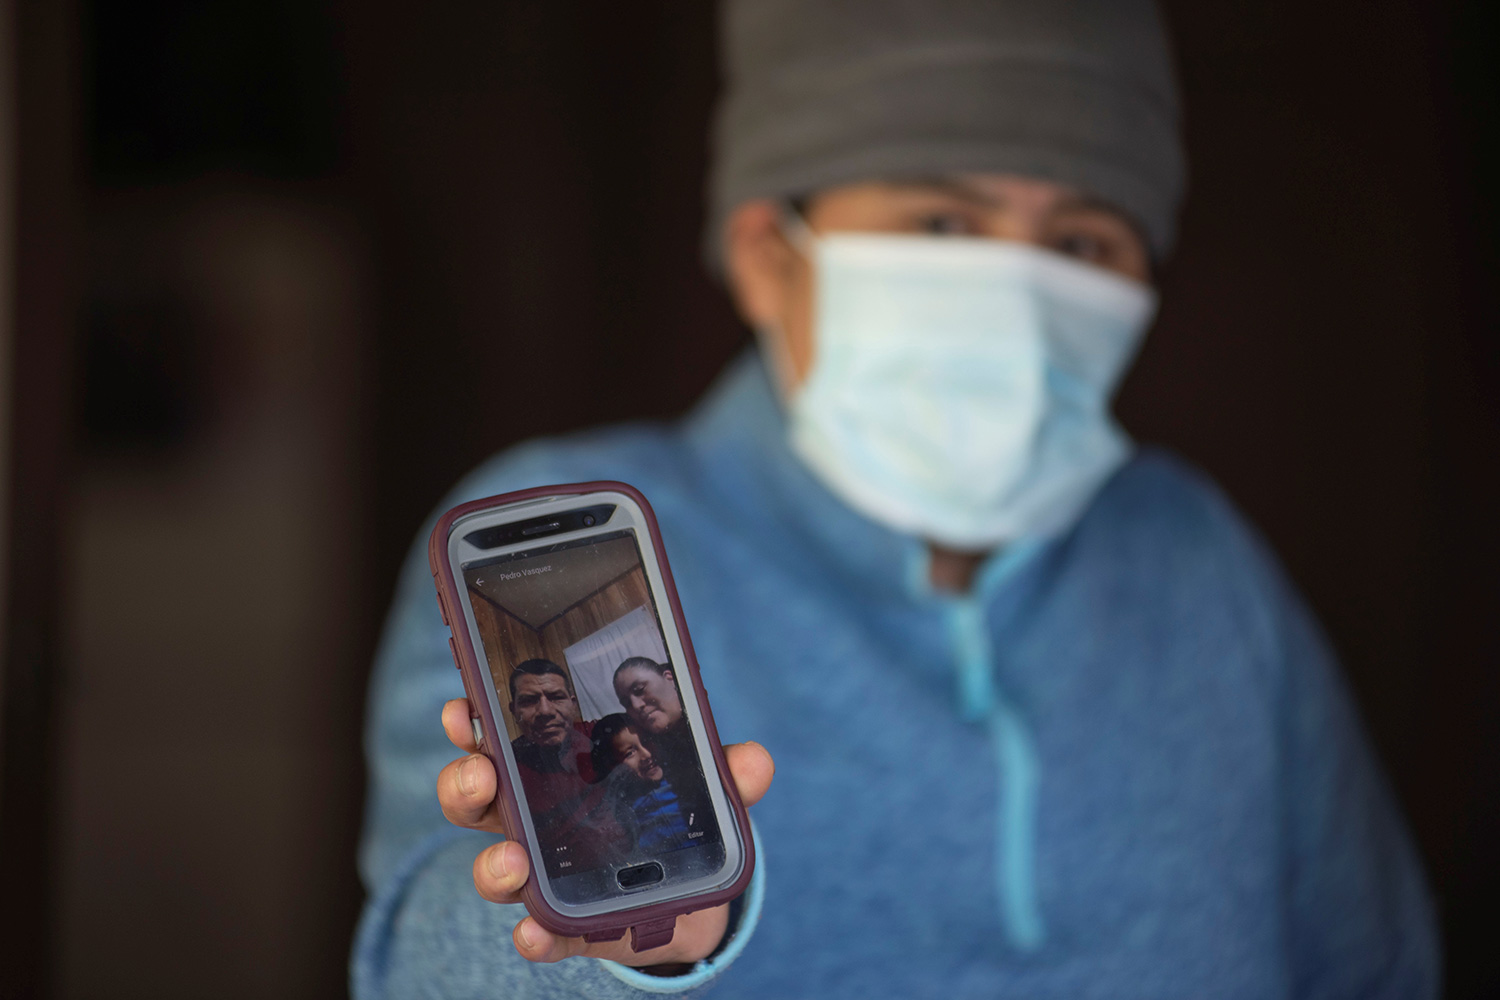 Picture shows Zoila holding a cell phone for the camera and wearing a mask. The photo on the phone shows the small family in happier times.